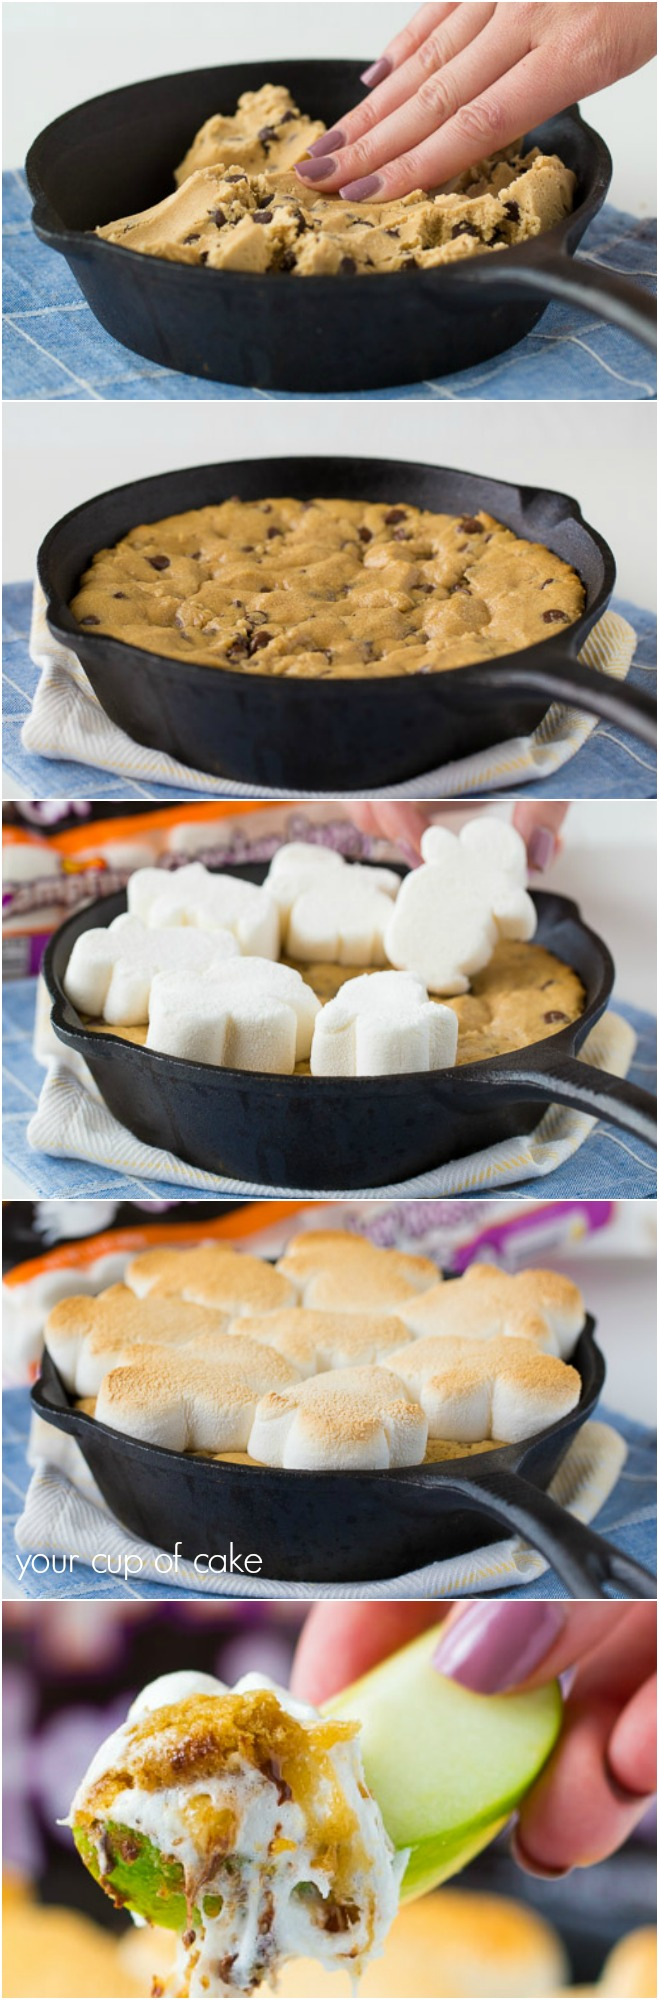 how-to-make-a-marshmallow-cookie-skillet